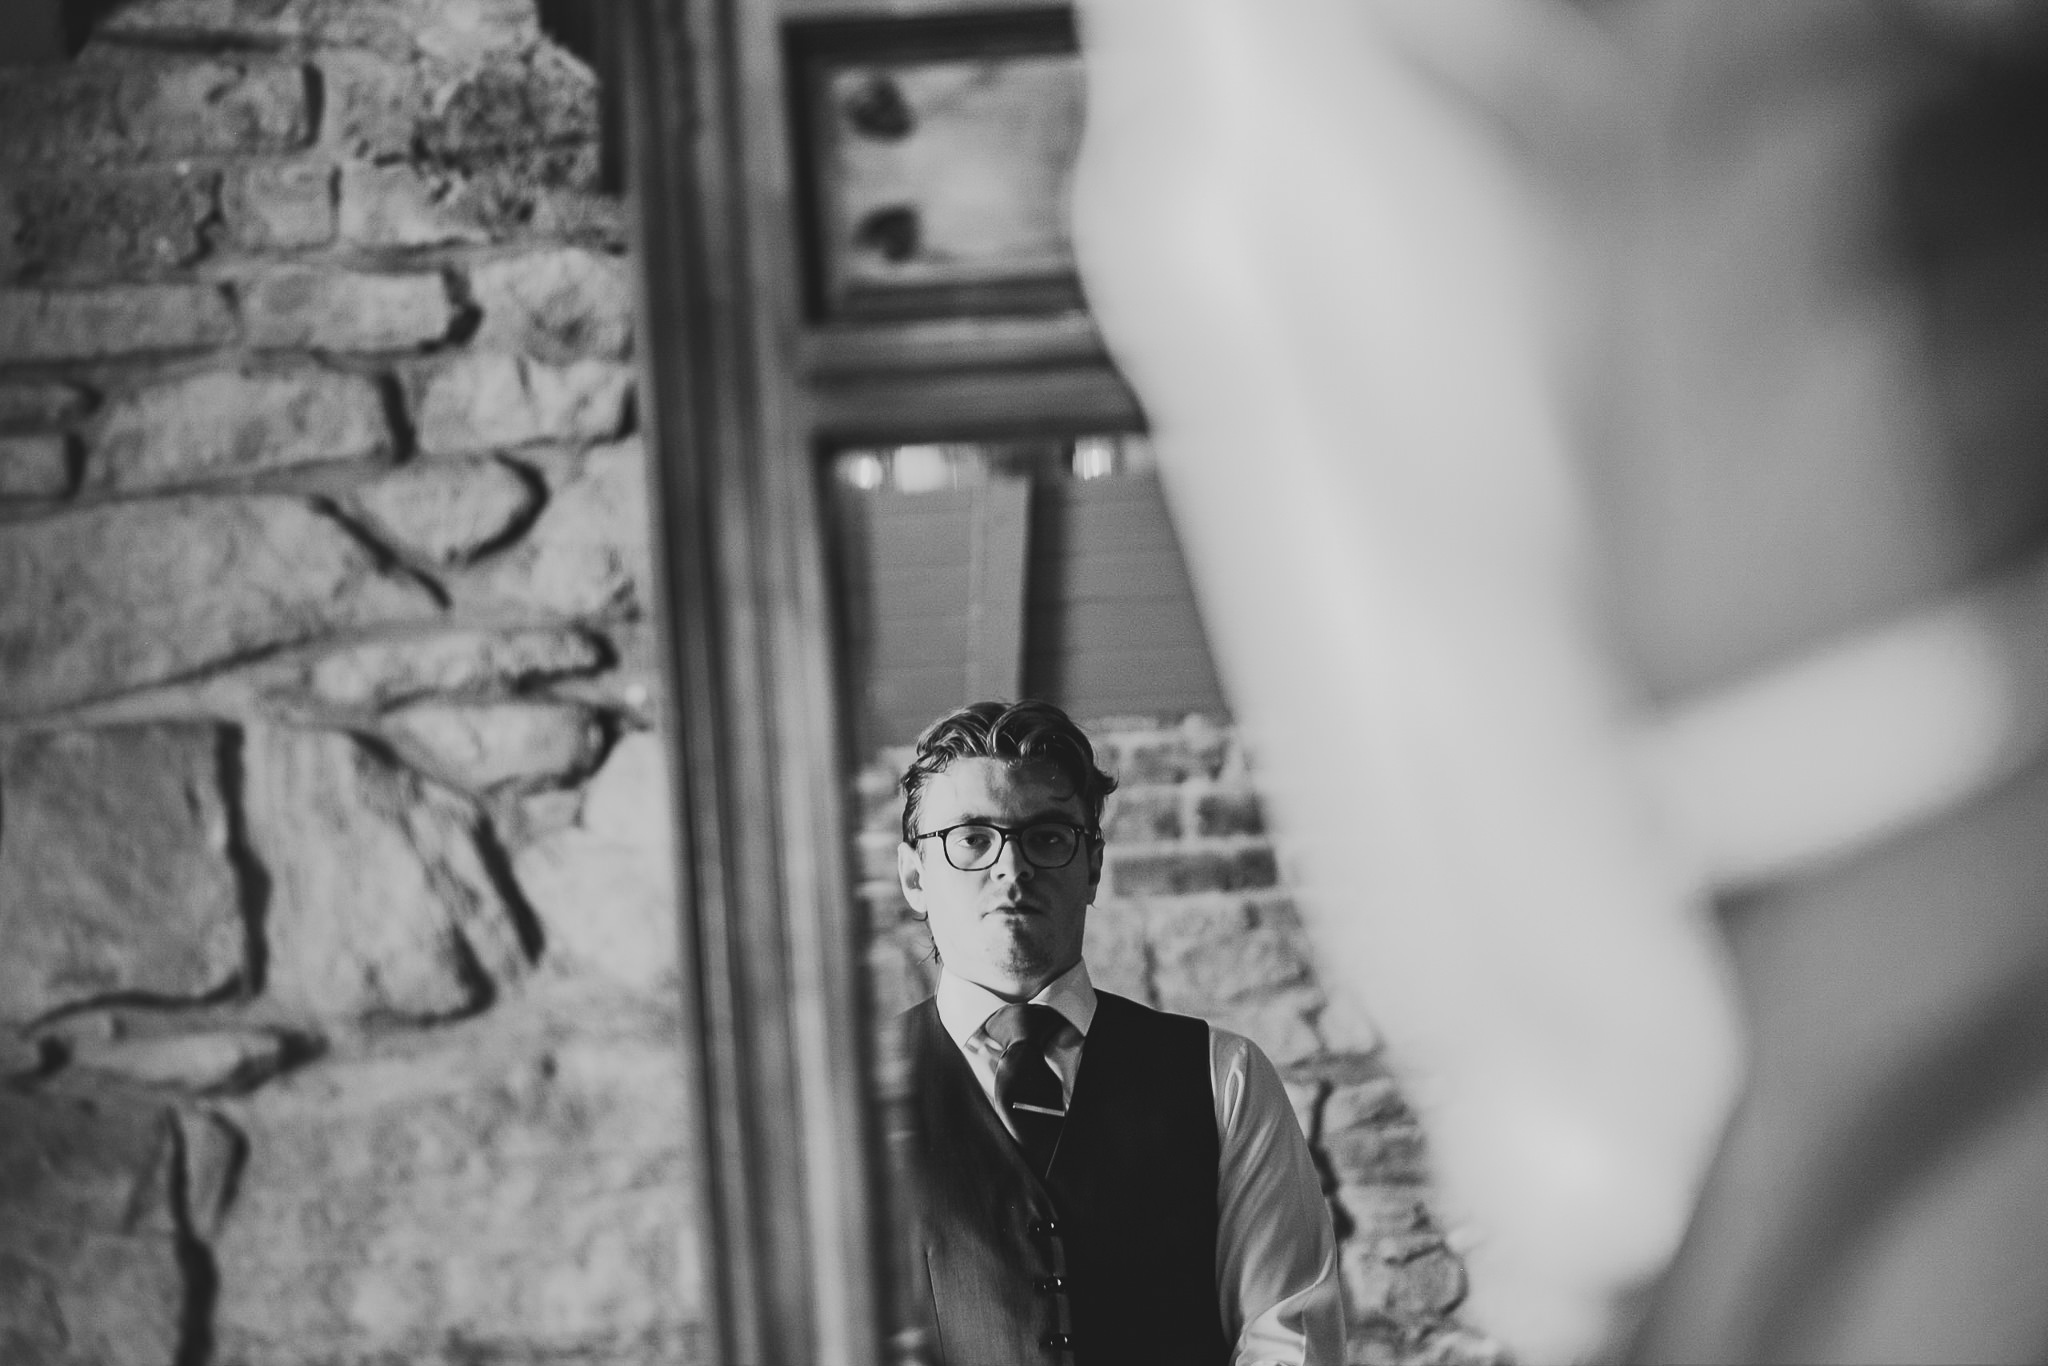 A black and white photo of the groom getting ready